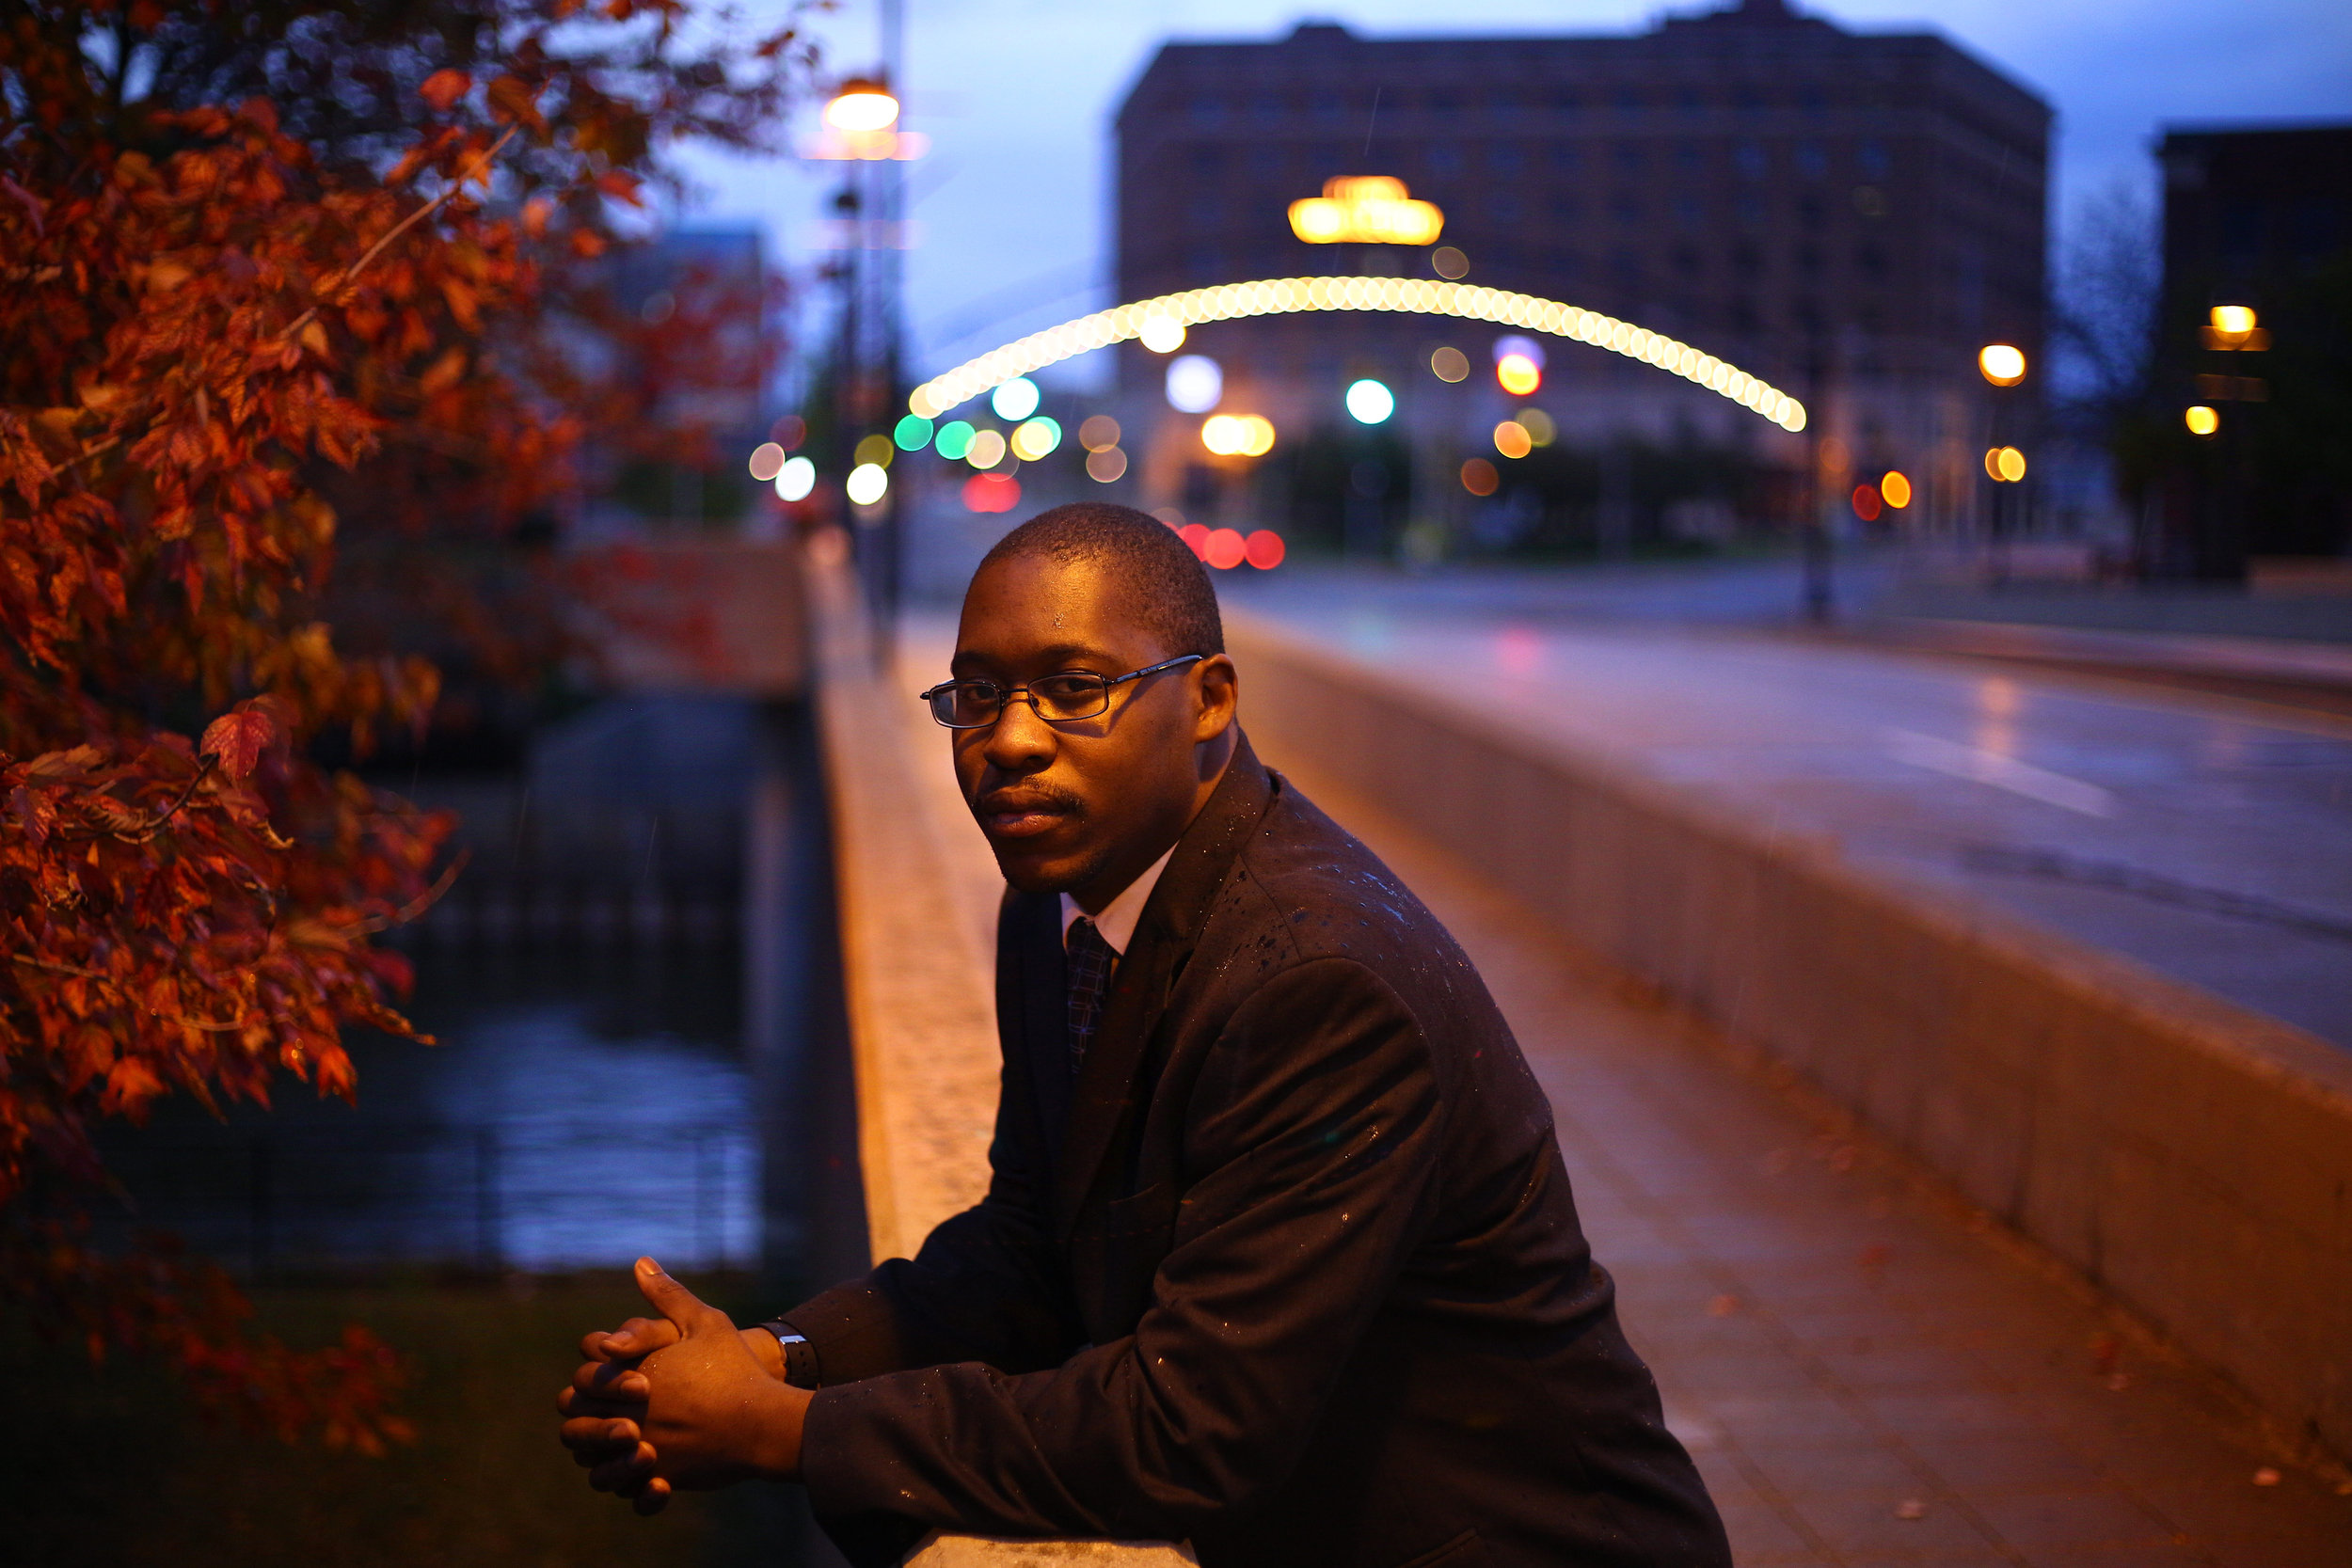 """Kayamone Sutton, 30, in downtown Flint, Mich., on October 23, 2016. A native of the city's north side, Sutton is running for Flint City Council in hopes of representing the 4th ward and bringing about positive political change. """"I look at it from the standpoint of what do the people want,"""" Sutton said. """"I think people want a candidate that is for the people, is actually going to help the people and tackle the issues, the real issues, and actually do what they say they're going to do when they get into office and thats one thing thats been lacking at the local level, all the way up to the federal level, even up to the presidency. So when it comes to voting, I'm not completely happy with the two choices that we have but I'll go for the lesser of the two evils which would be in my opinion, Hillary Clinton."""" For  The Ground-Truth Project."""